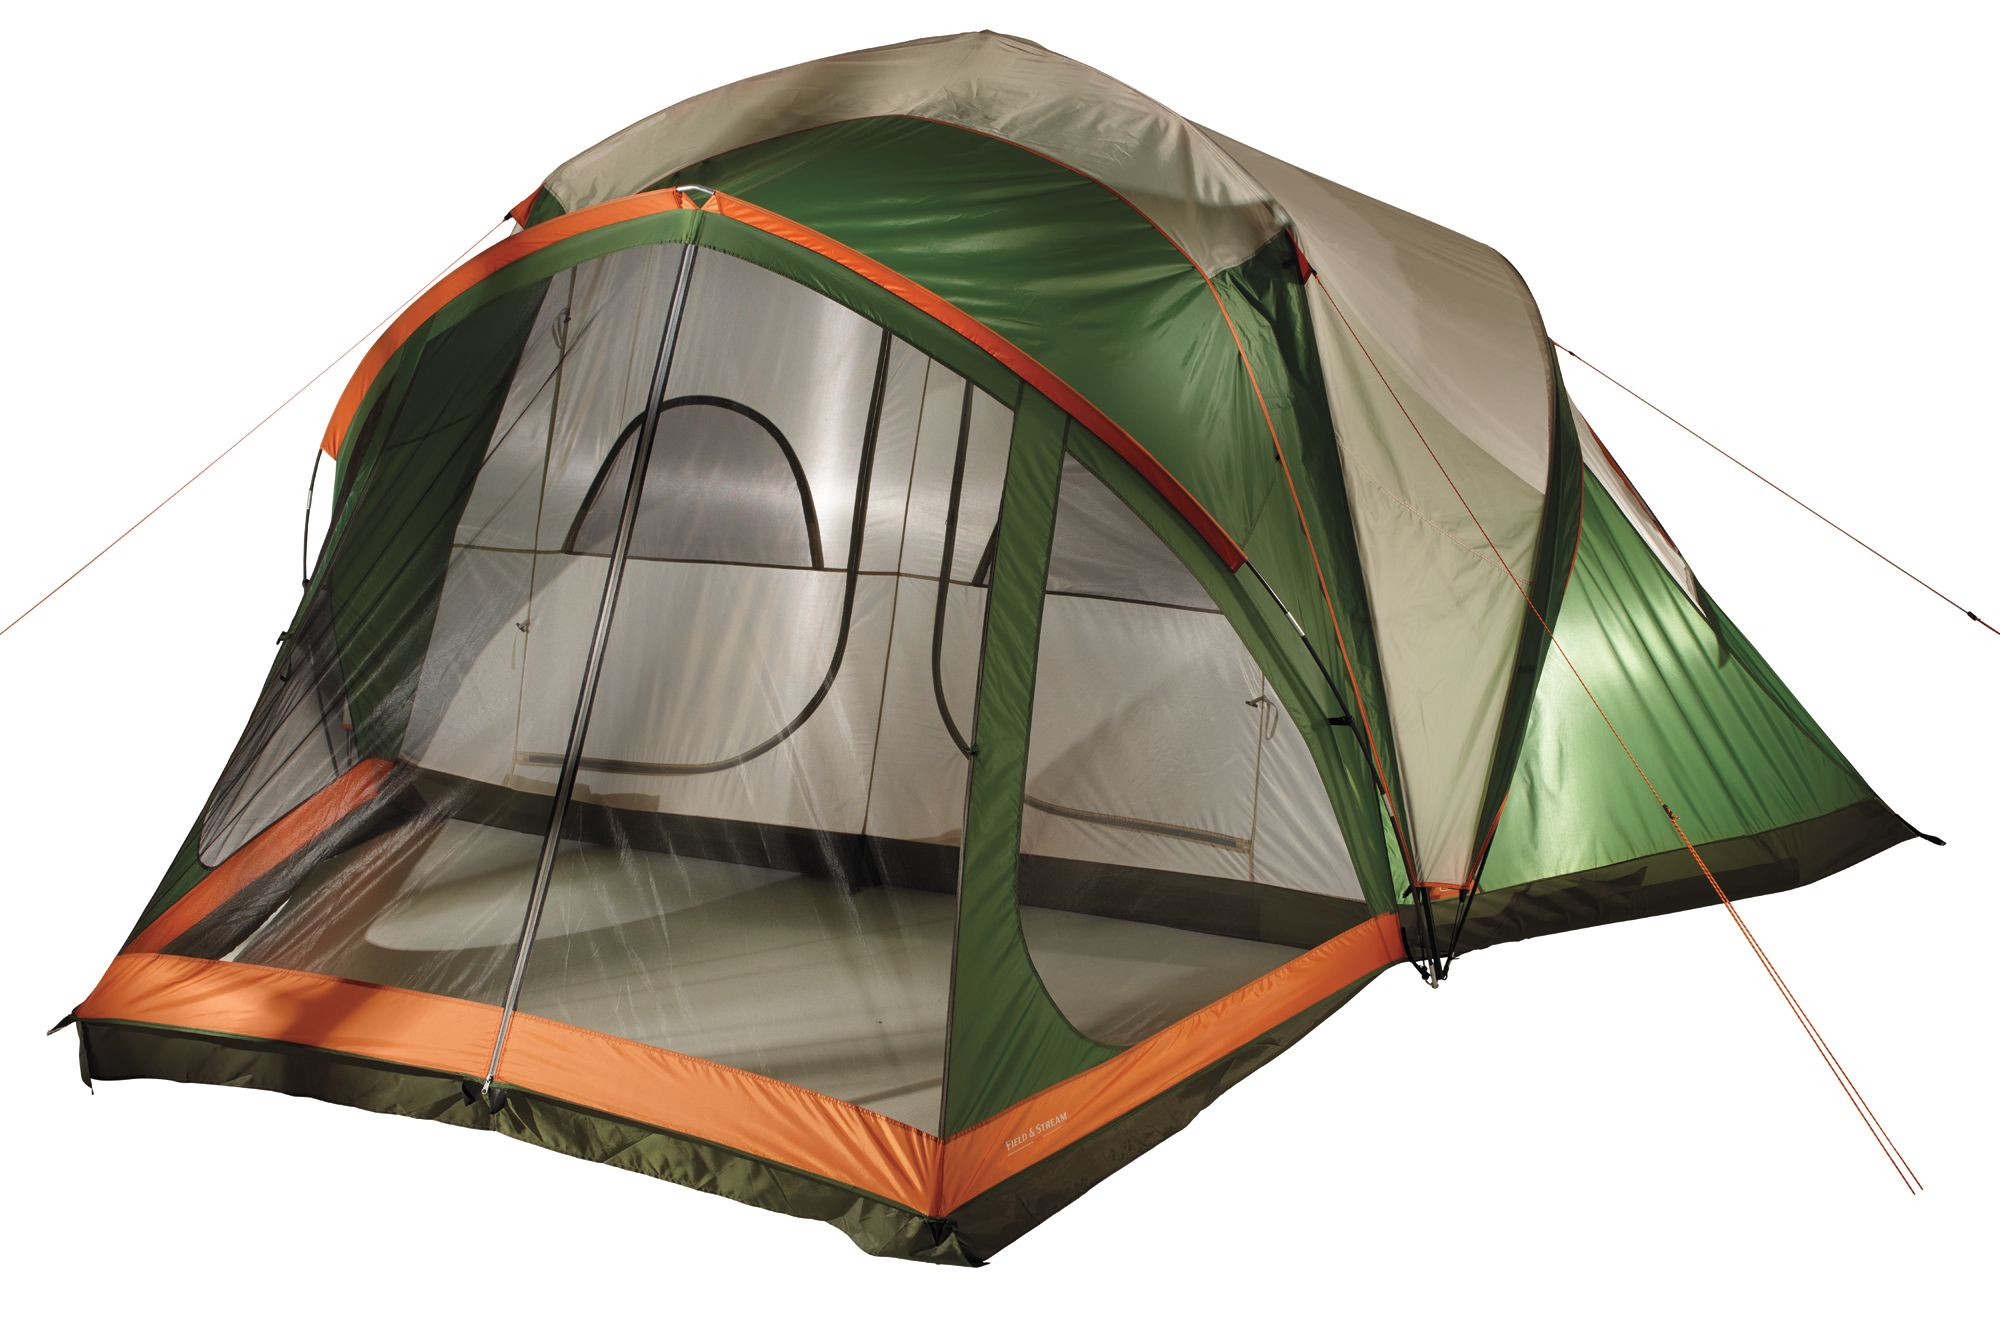 Product Image · Field u0026 Stream Forest Ridge 8 Person Cabin Tent  sc 1 st  DICKu0027S Sporting Goods & 8 Person Tents | Best Price Guarantee at DICKu0027S